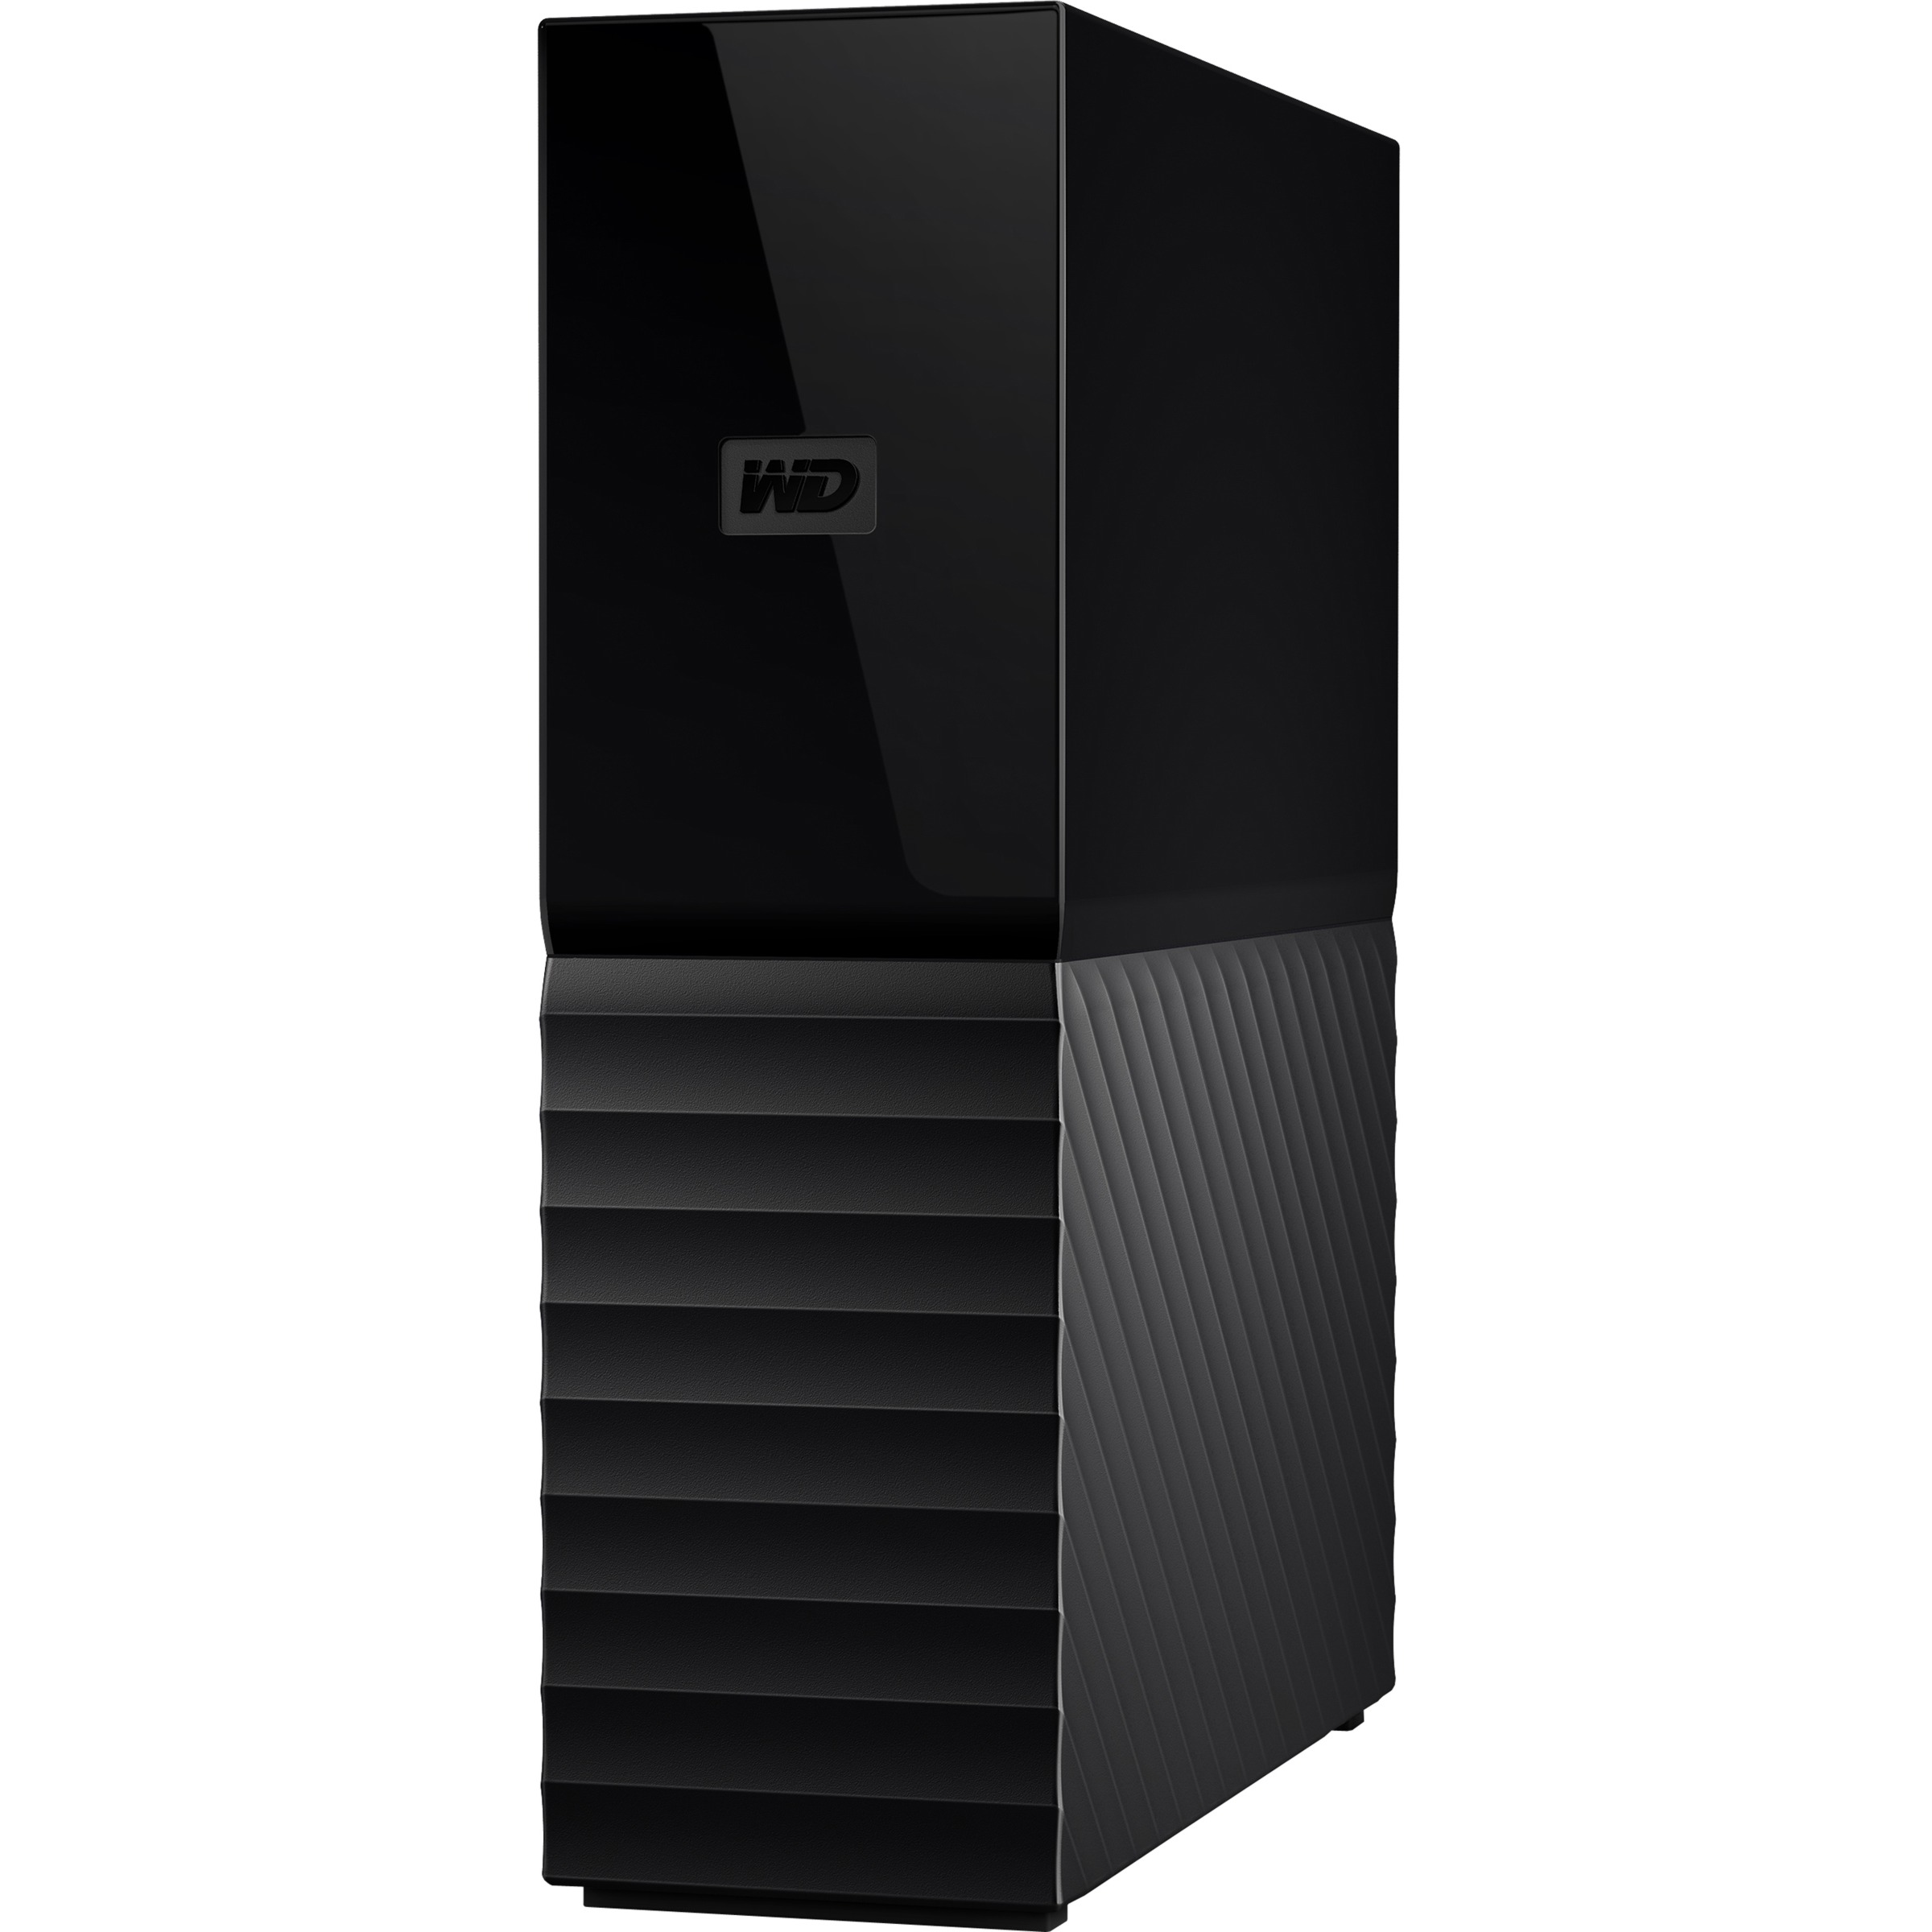 WD My Book 4TB USB 3.0 desktop hard drive with password protection and auto backup software - USB 3.0 - Desktop - Black - Retail - 256-bit Encryption Standard 0